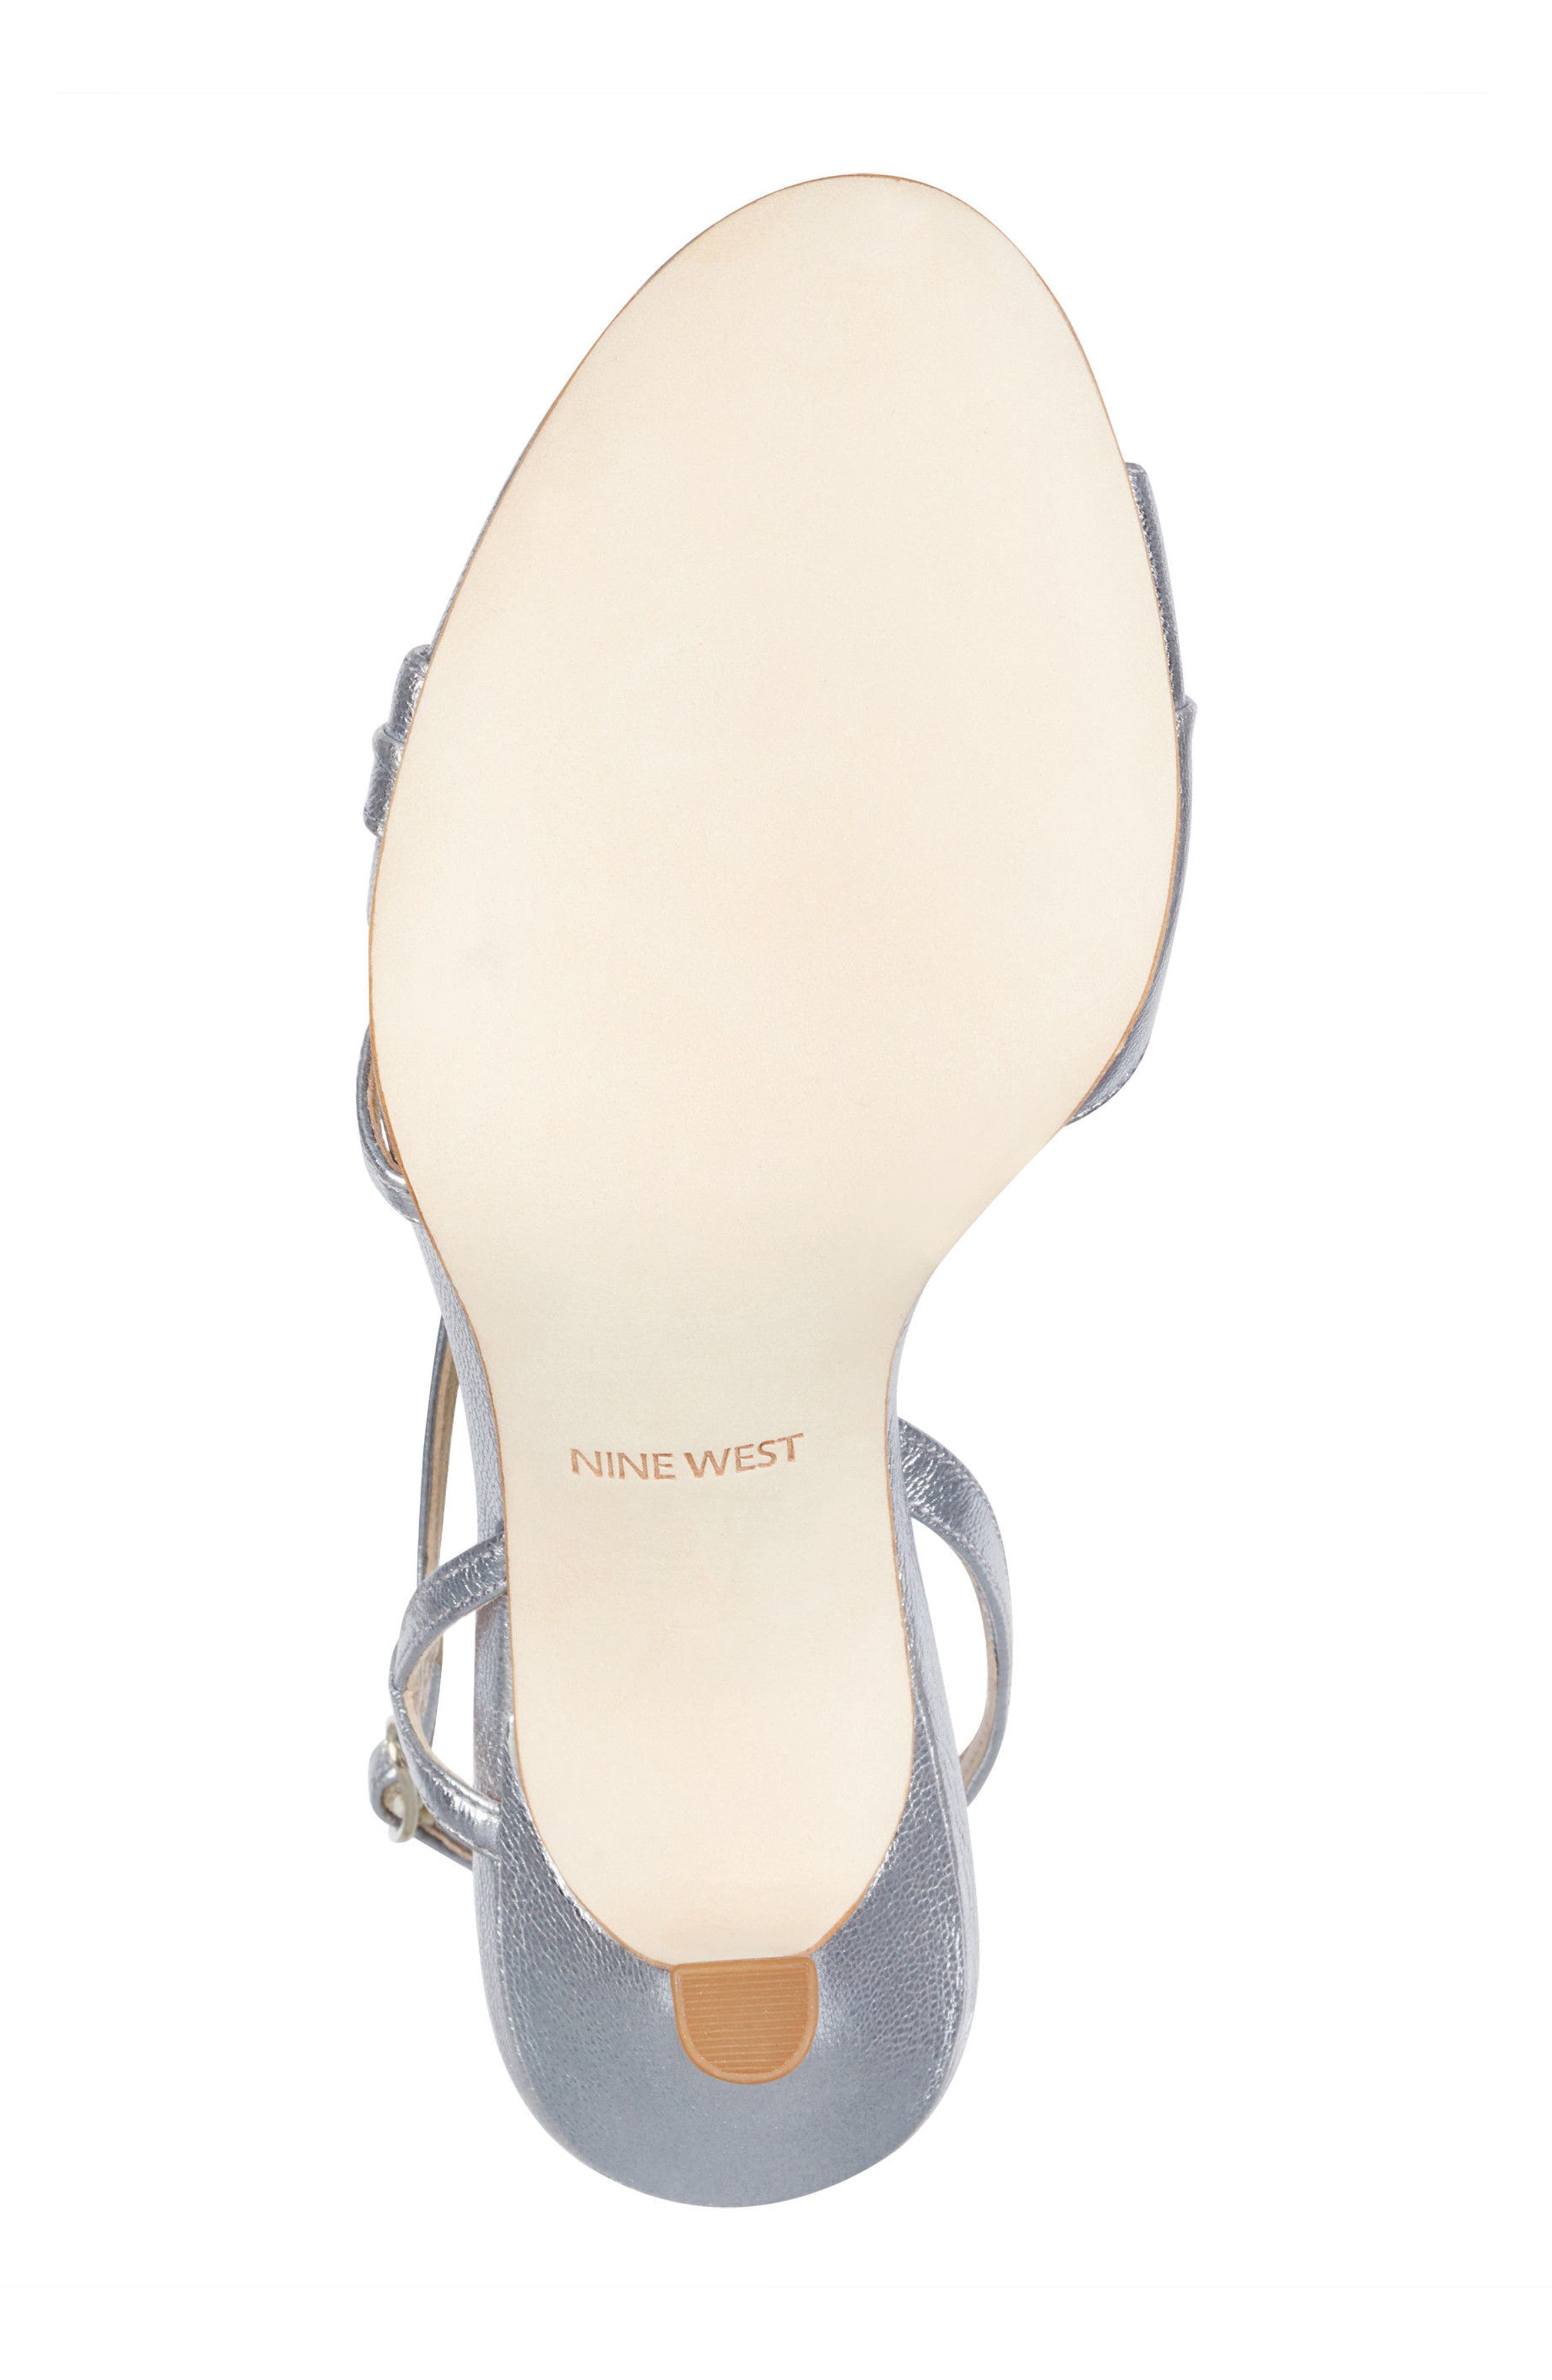 Accolia - 40th Anniversary Capsule Collection Sandal,                             Alternate thumbnail 6, color,                             SILVER LEATHER